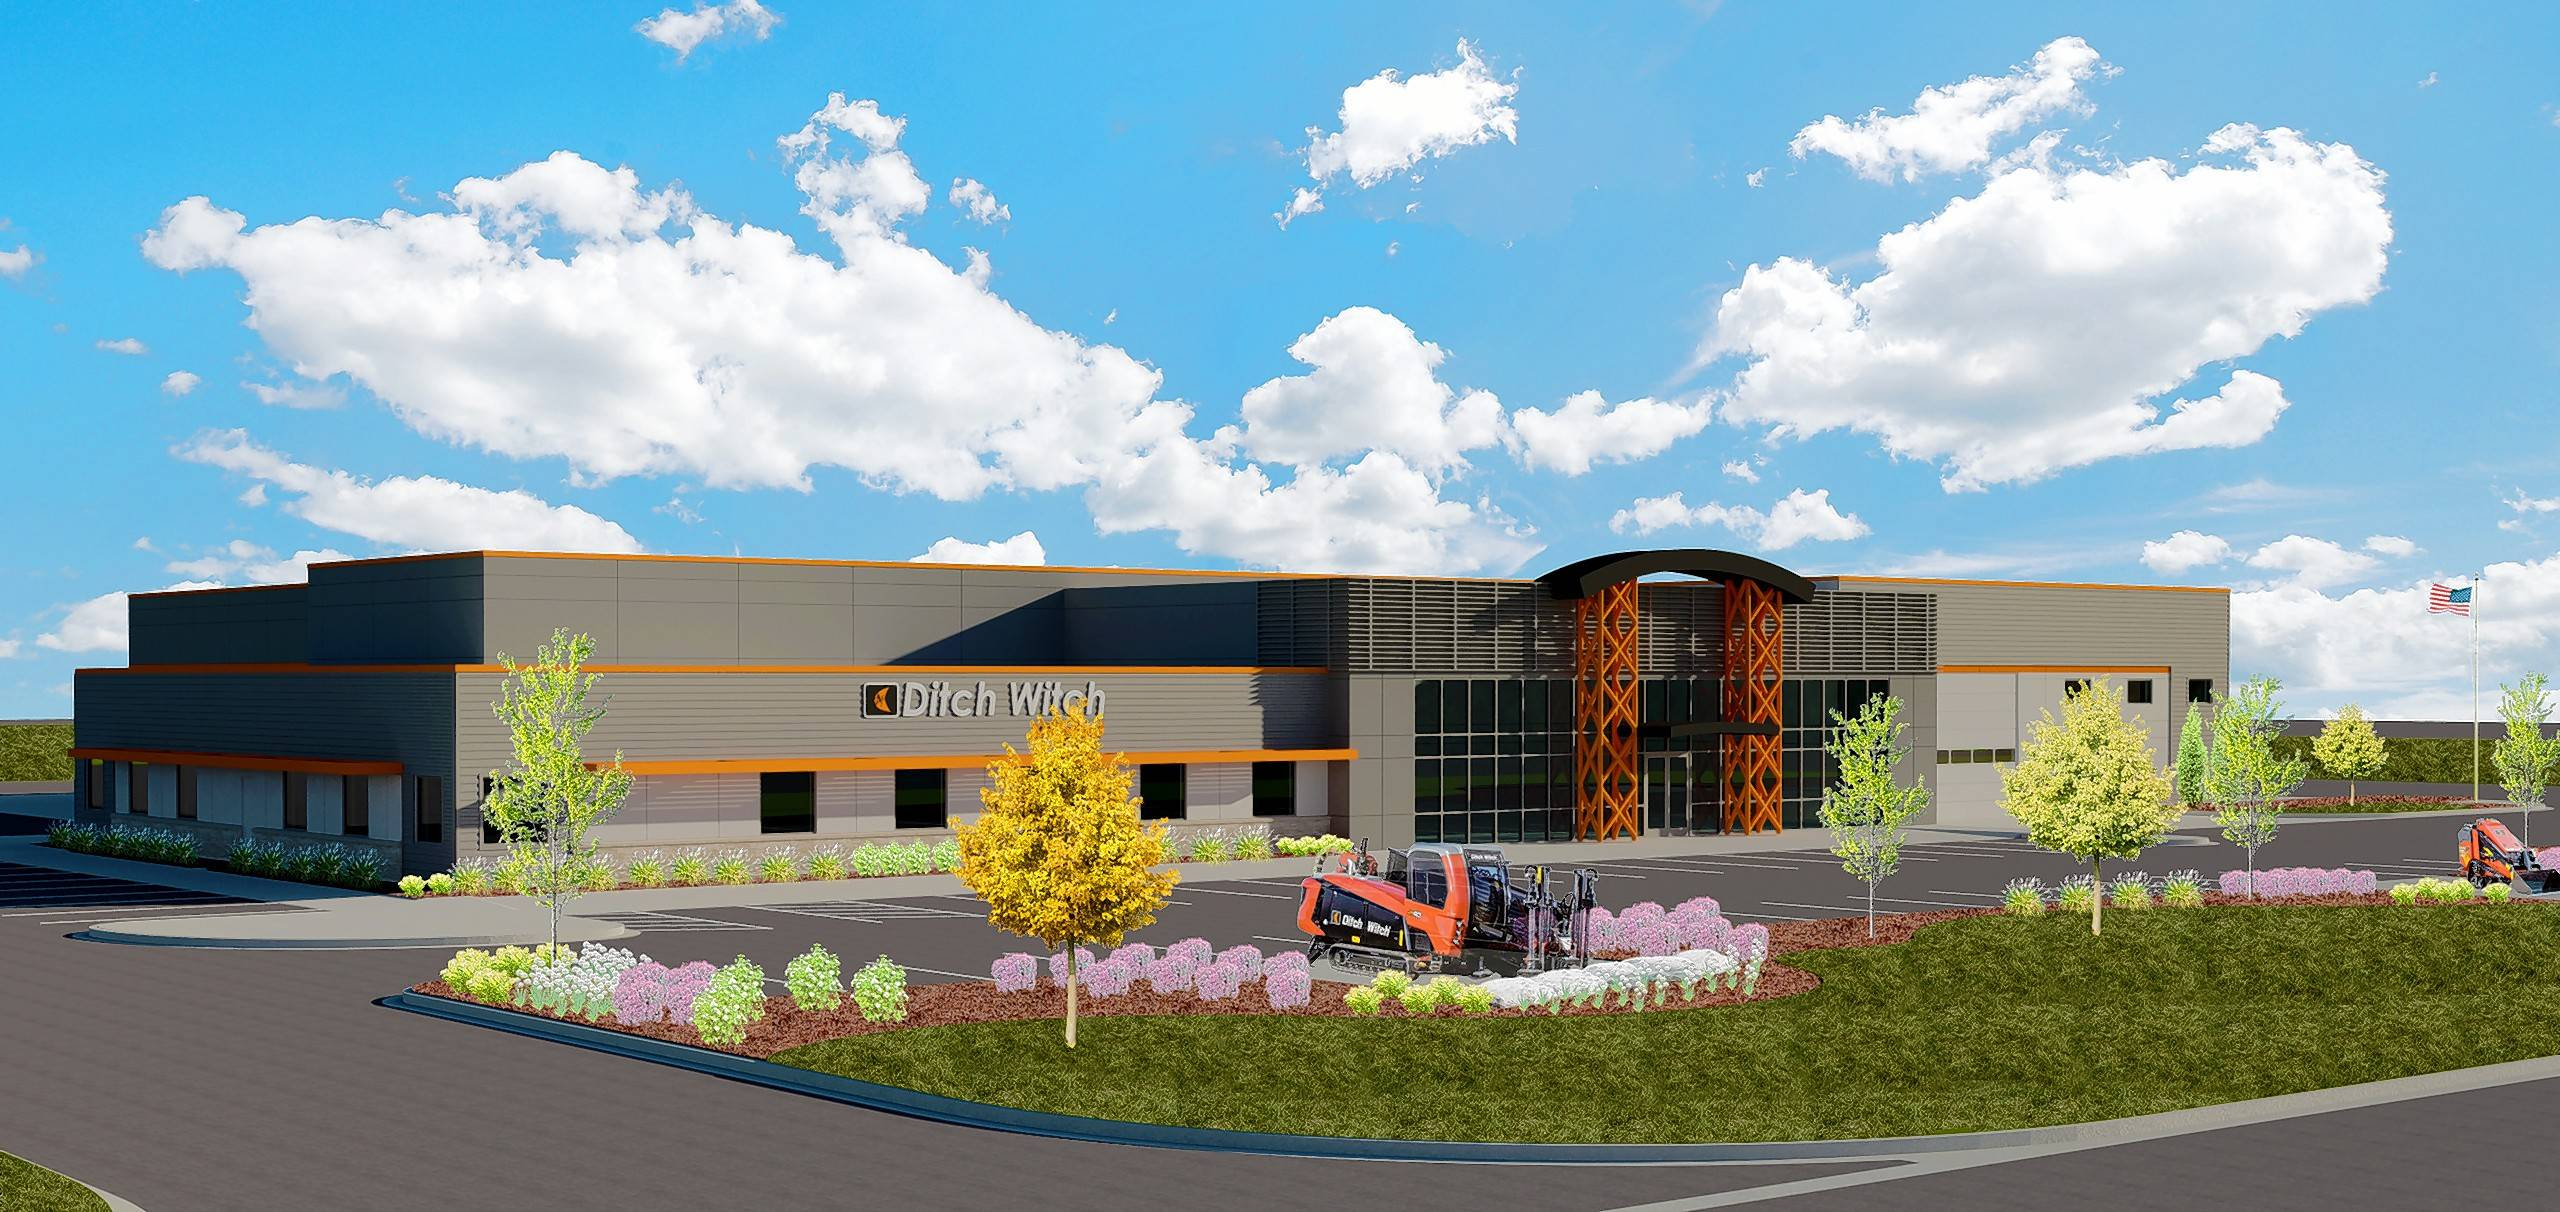 Schramm Construction Corp. will break ground on the new Ditch Witch Midwest facility on July 25.